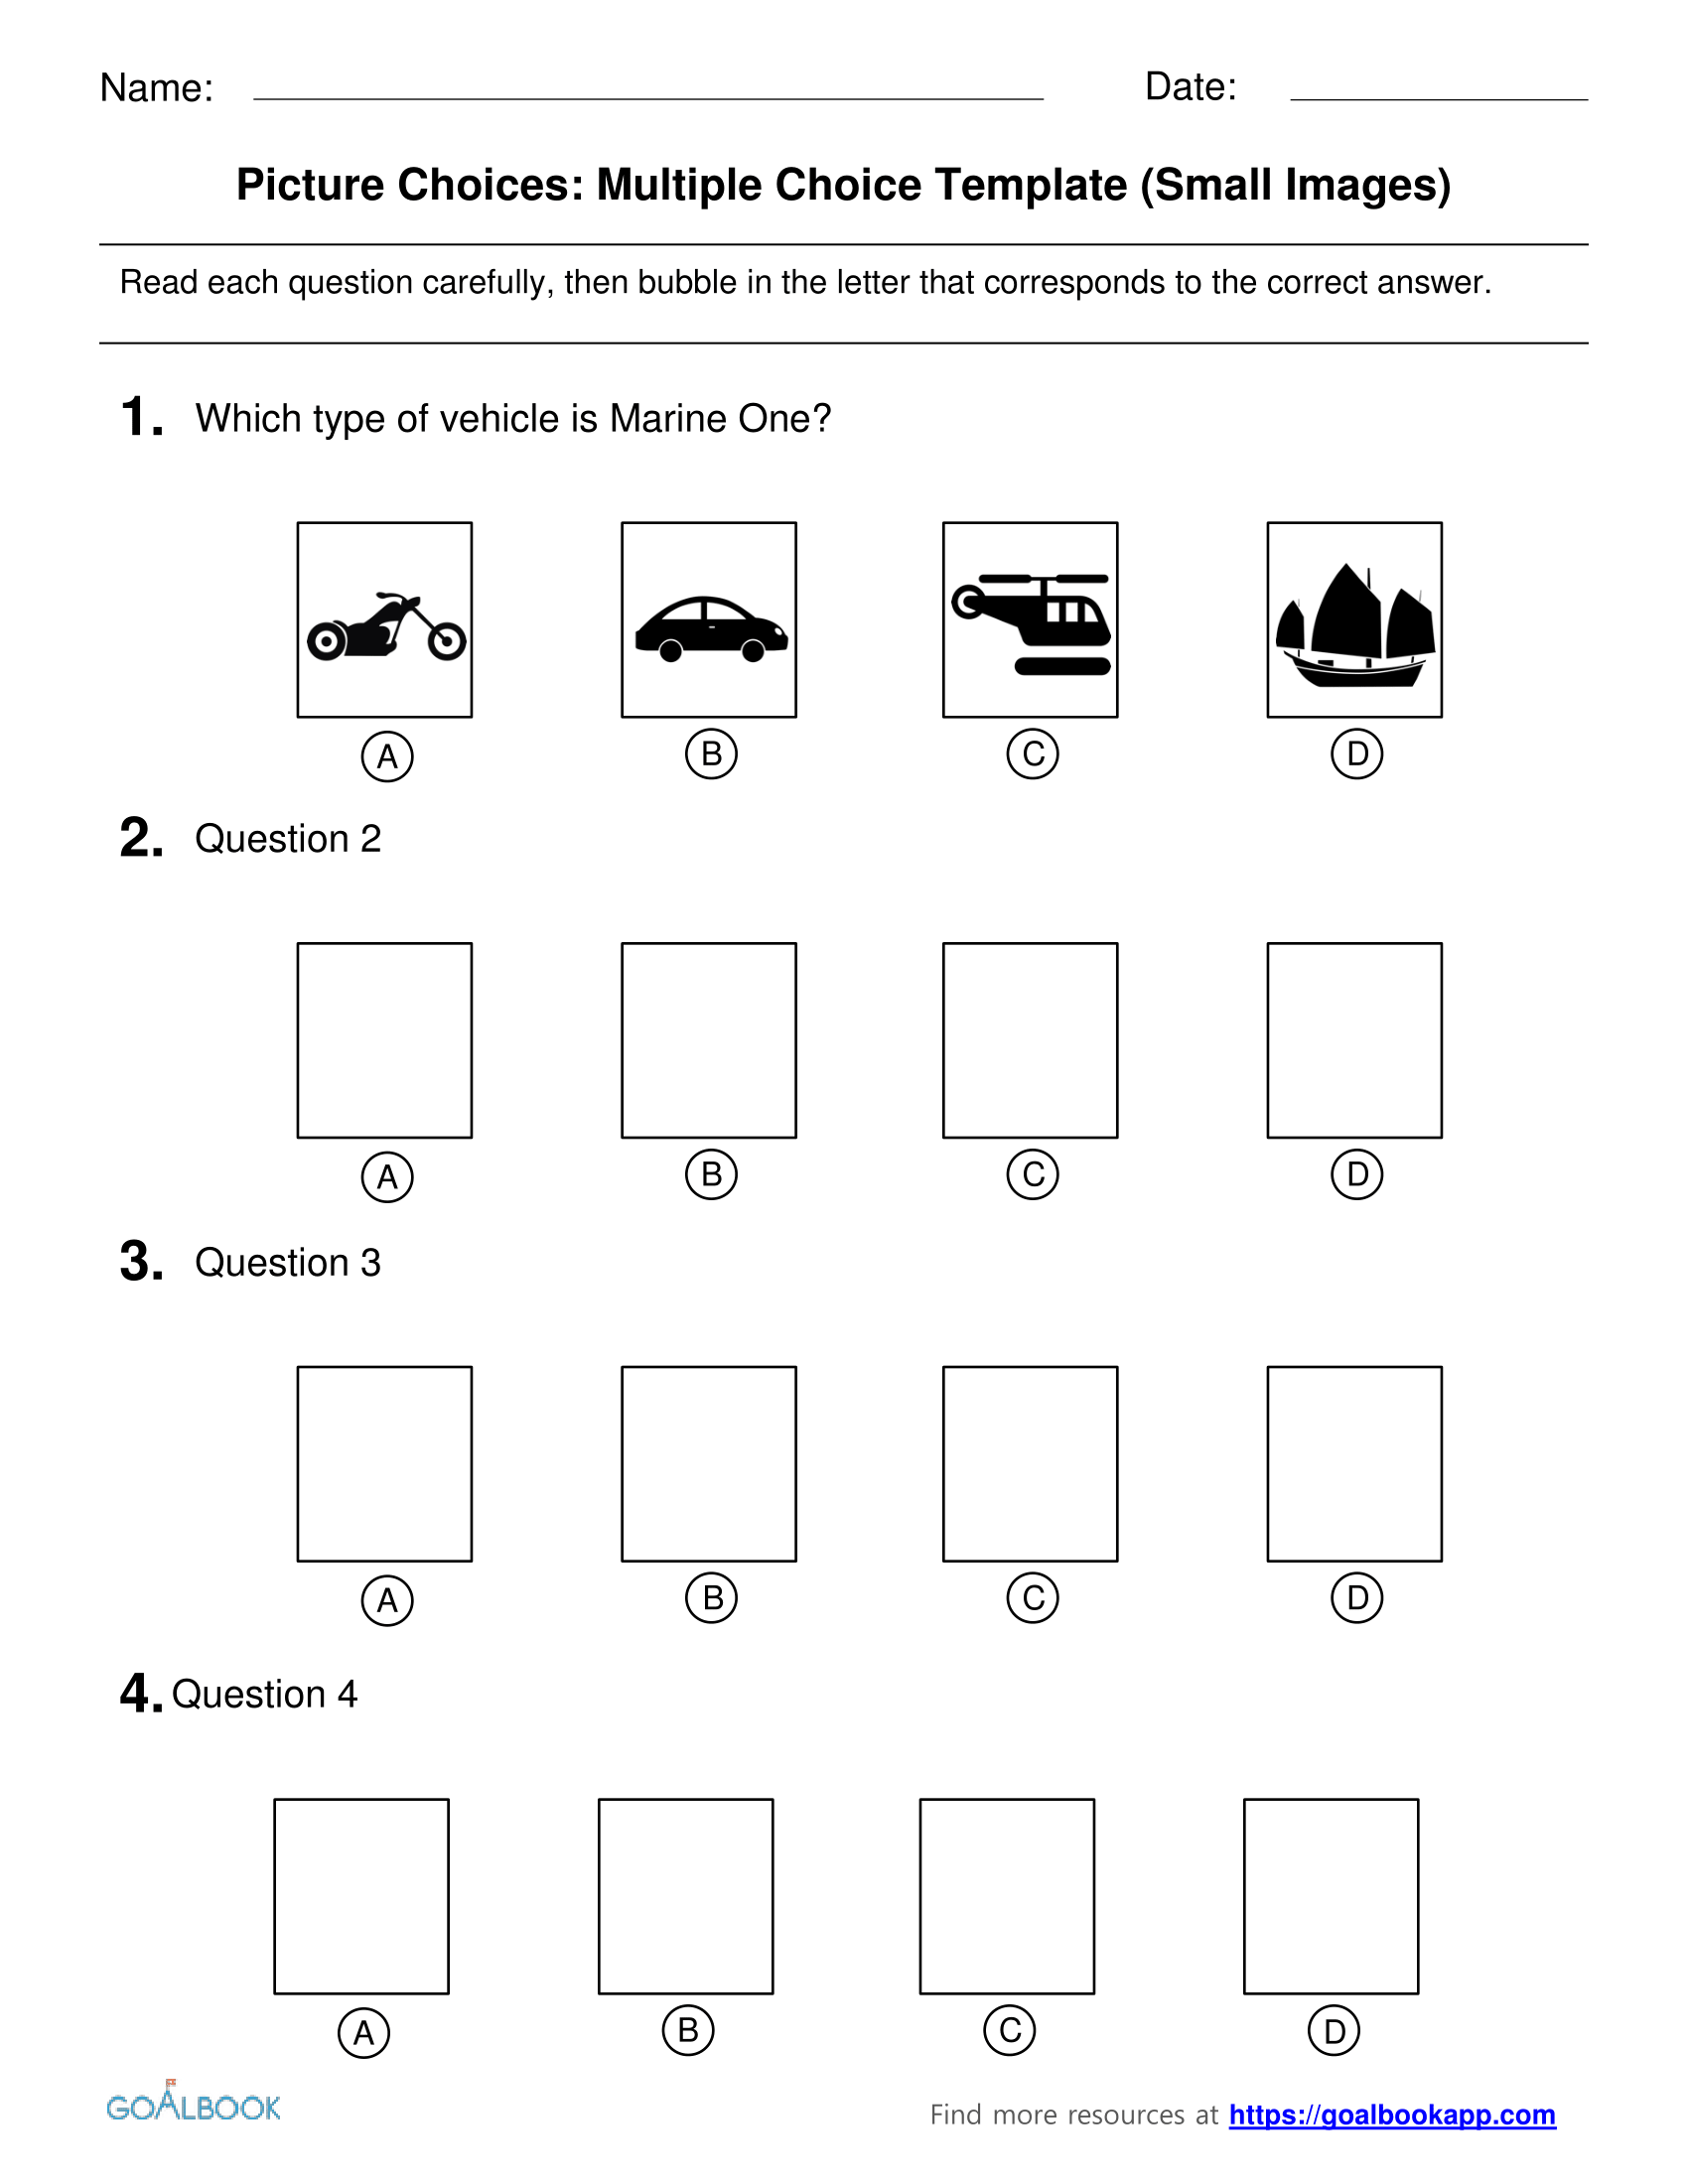 Multiple Choice Picture Choice Templates